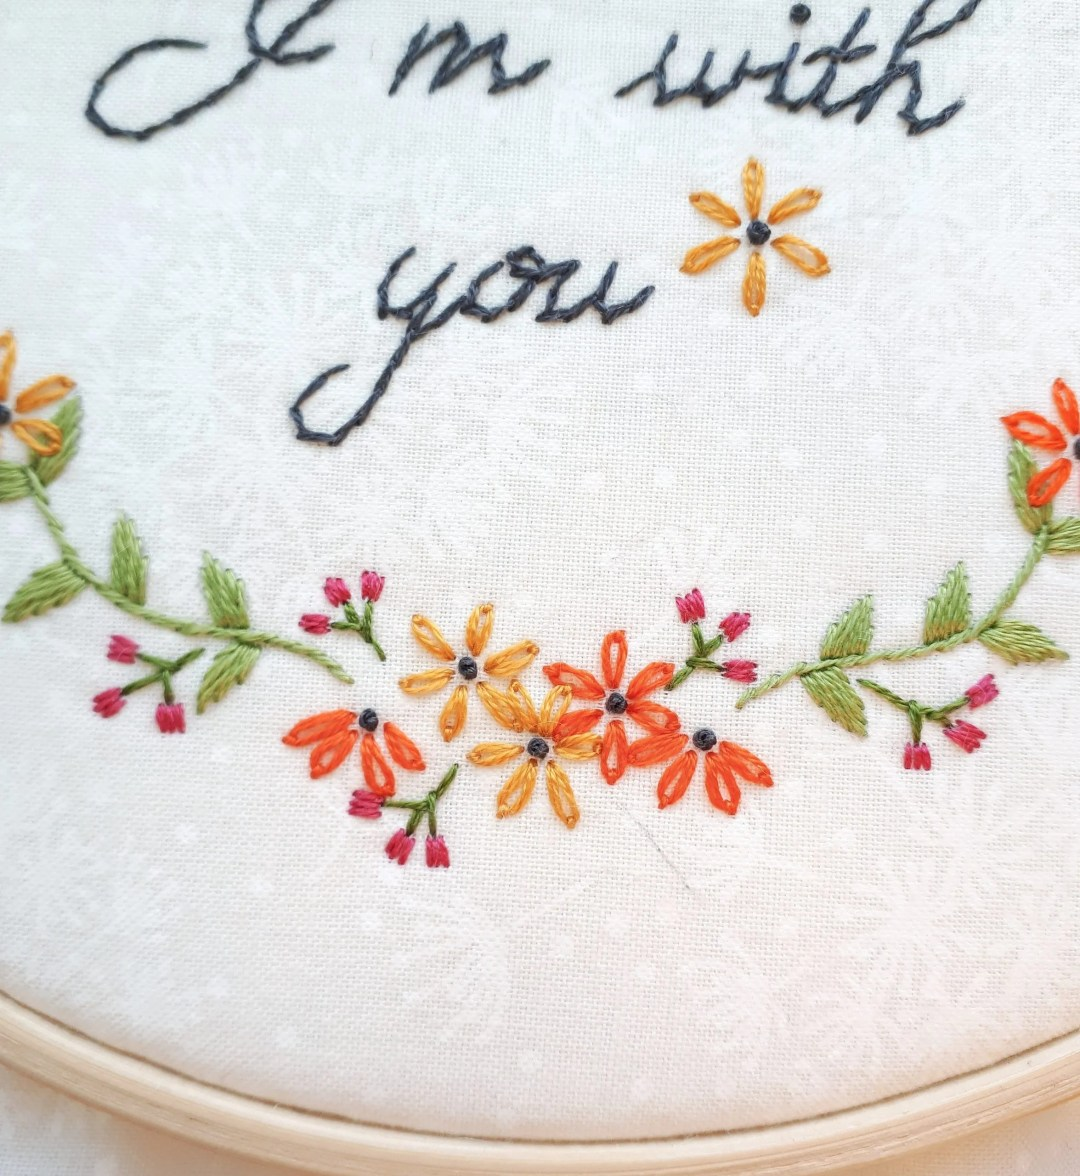 Use a french knot and a lazy daisy stitch to create beautiful black eyed susan flowers!